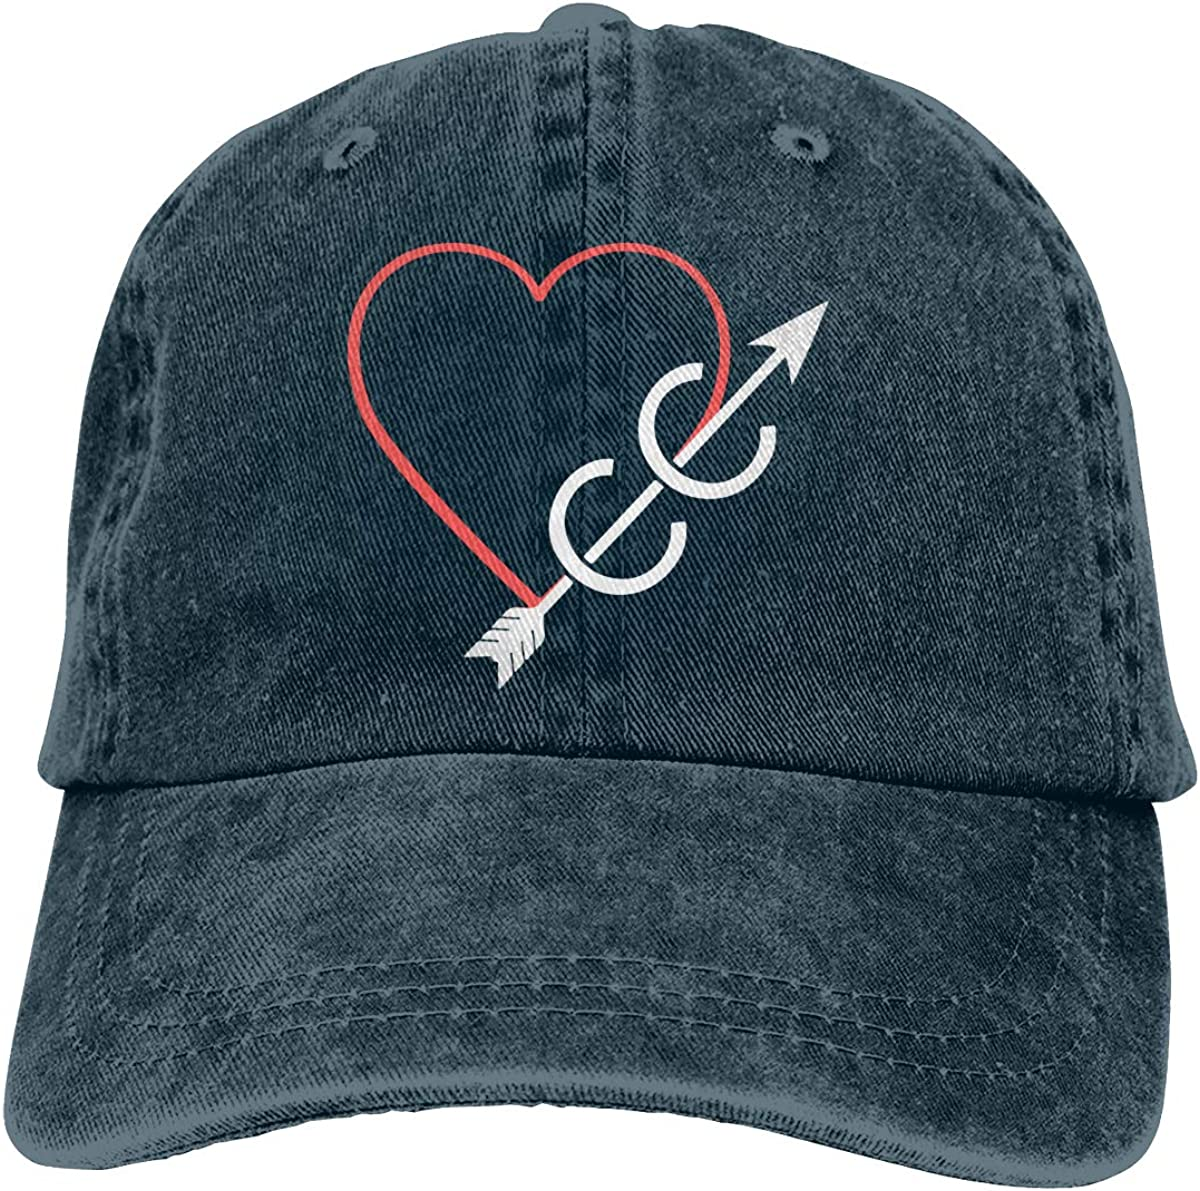 Heart and Cross Country Unisex Adult Cowboy Hat Hip Hop Cap Adjustable Truck Driver Hat